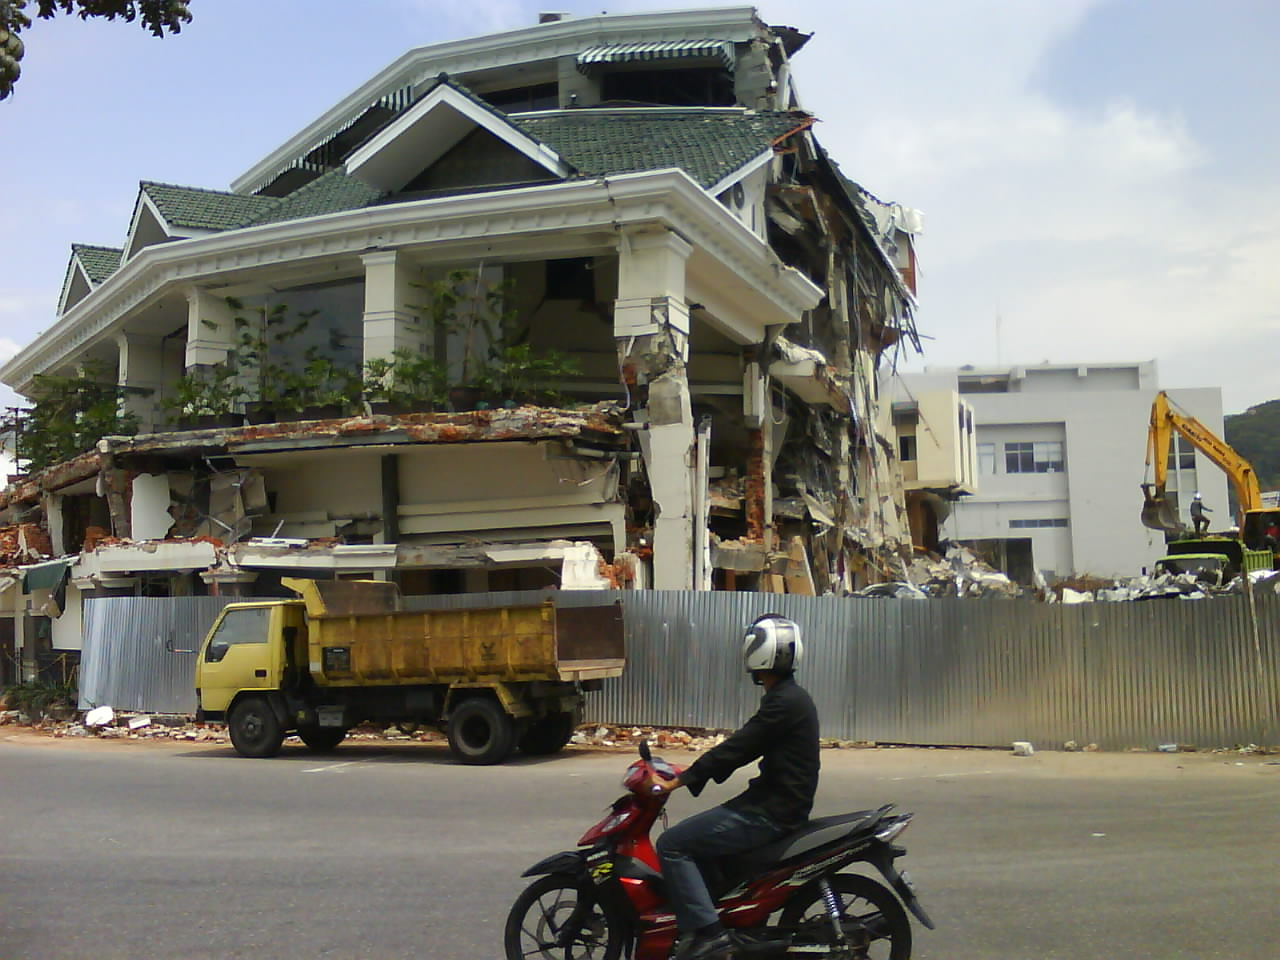 The Breakup of Ambacang Hotel On 2009 Earthquake in Padang